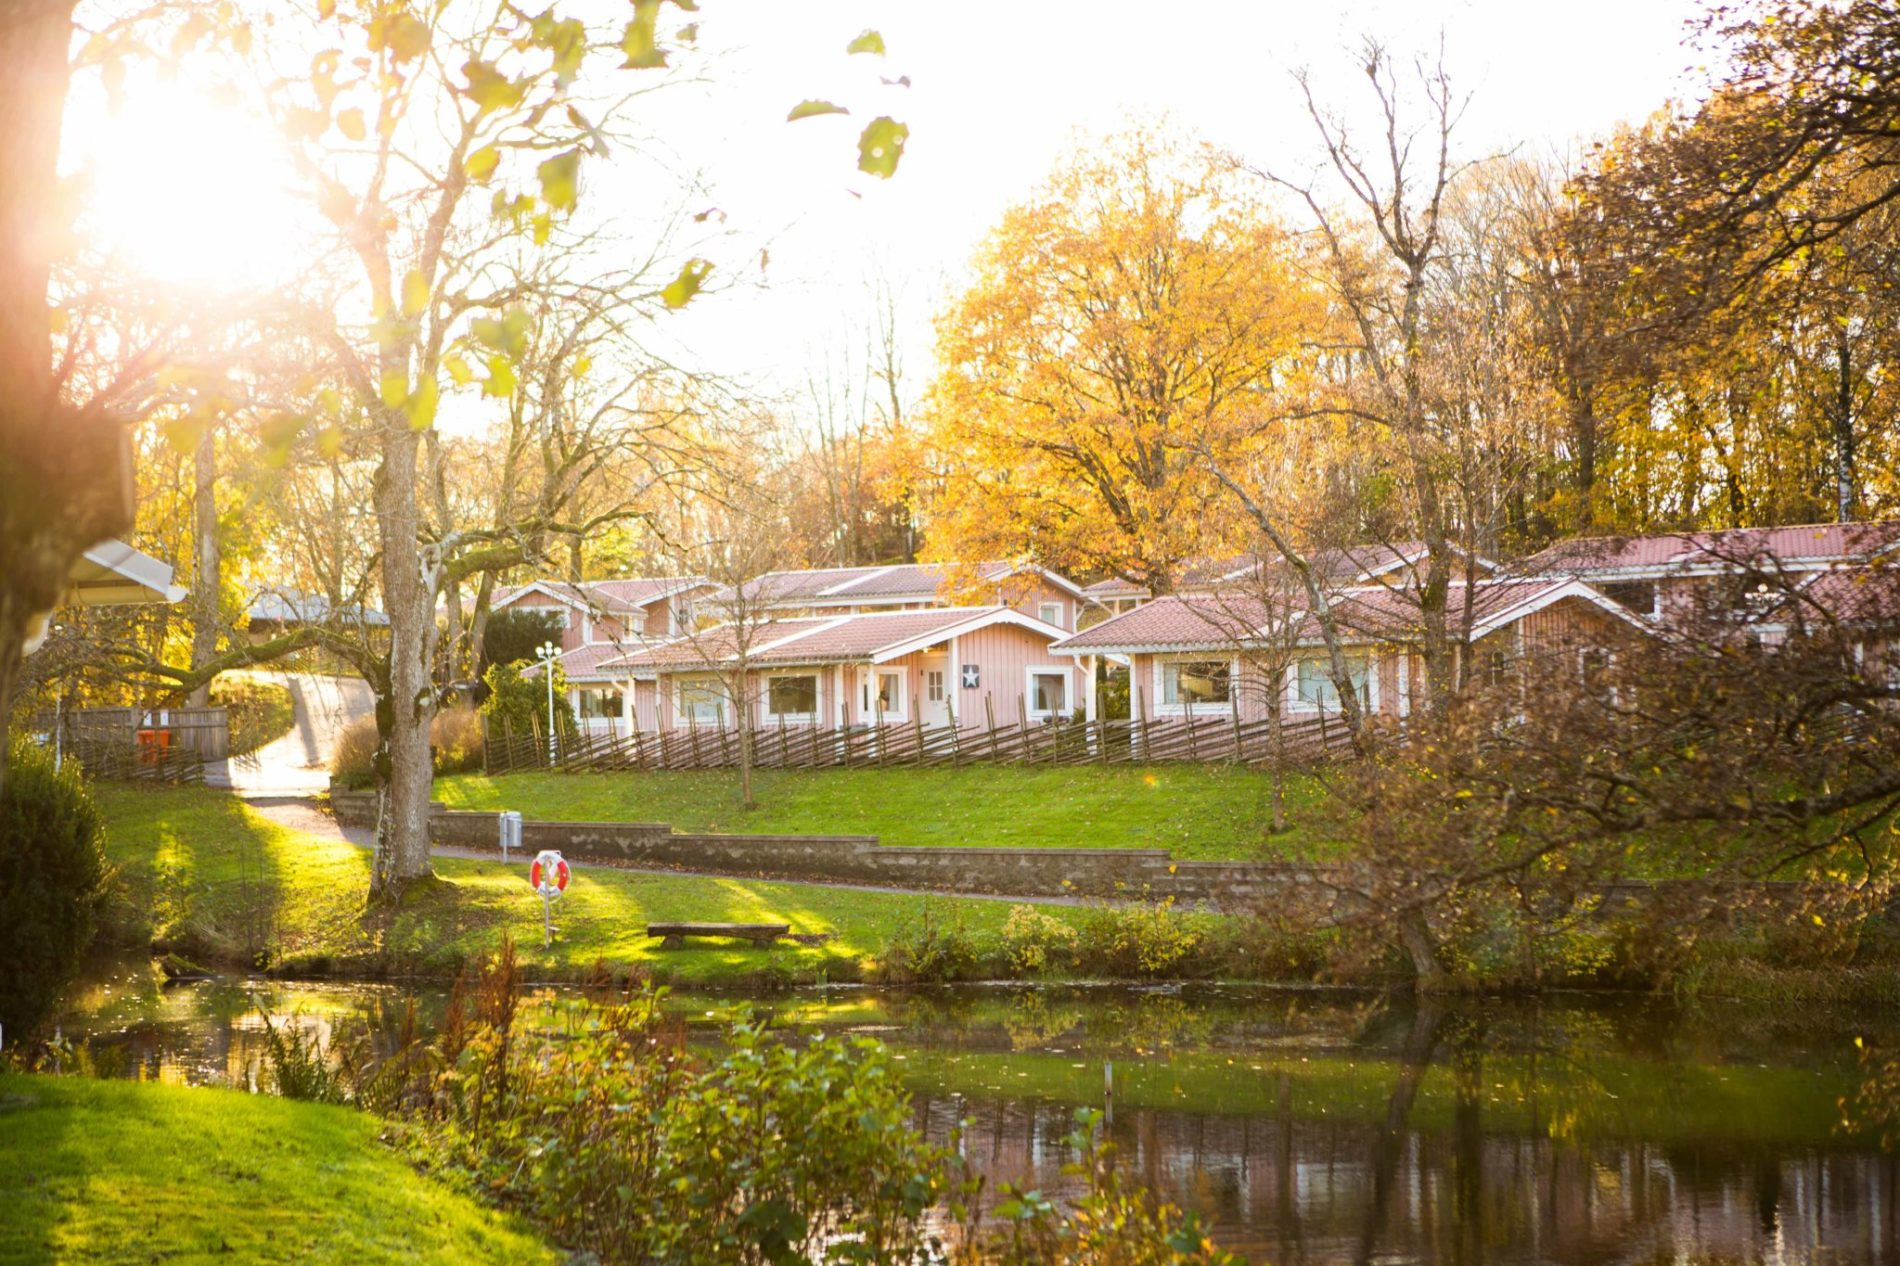 Lisebergsbyns camping